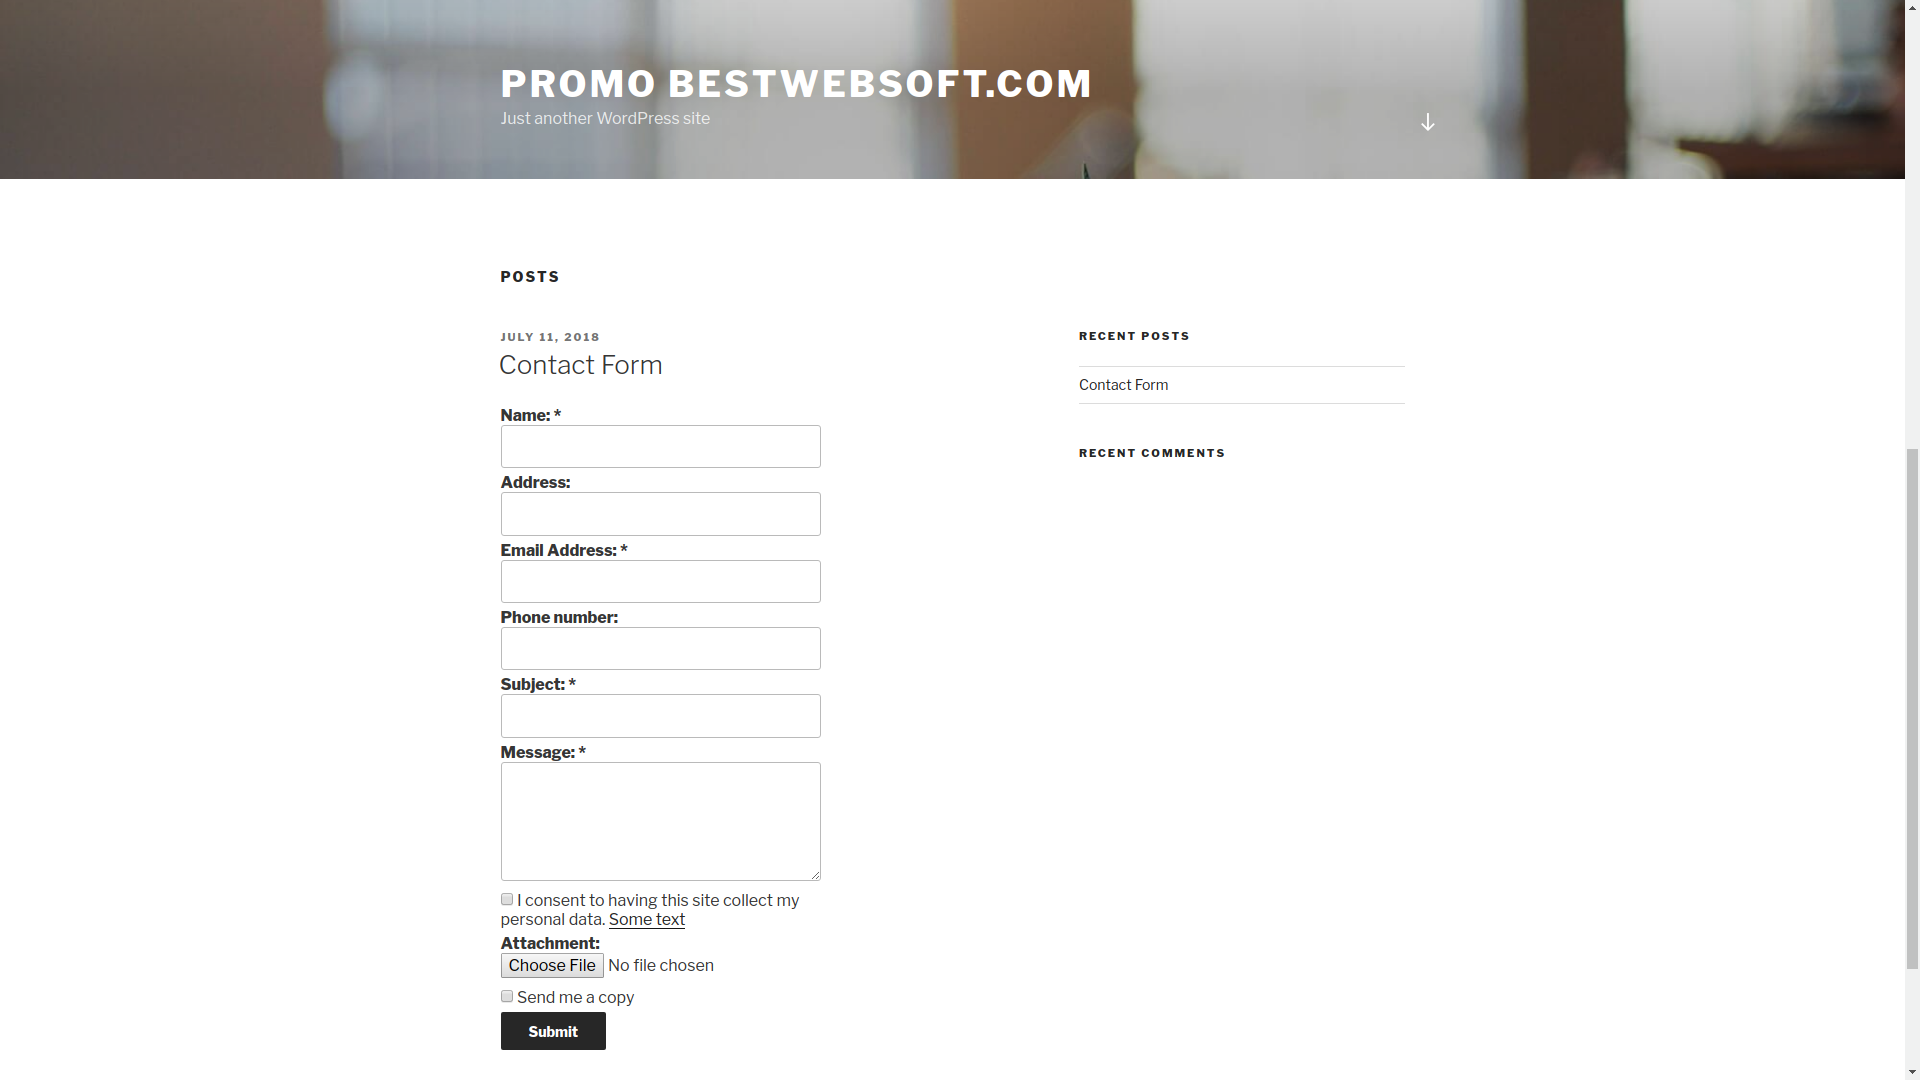 Contact Form displaying with additional fields.